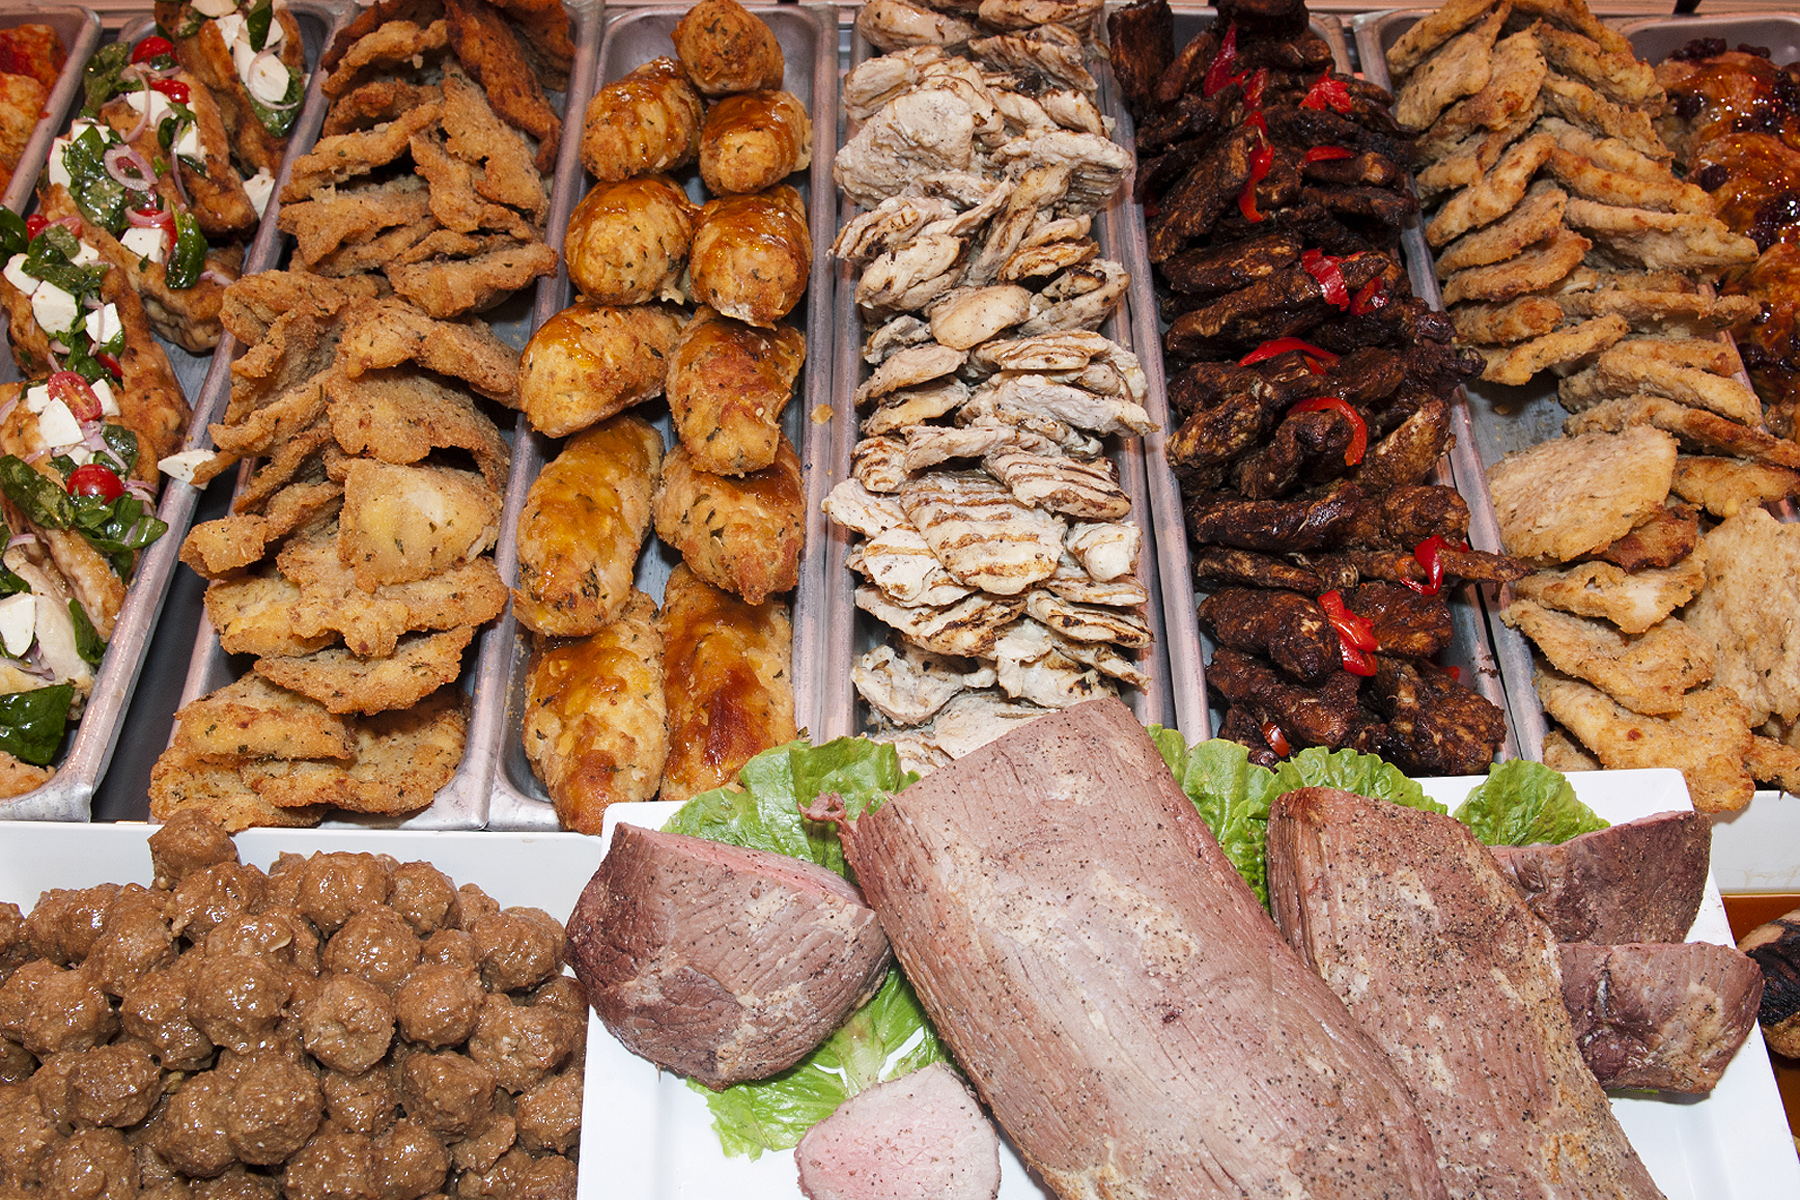 chicken cutlets, meatballs, grilled chicken, and other kinds of meat in a deli case